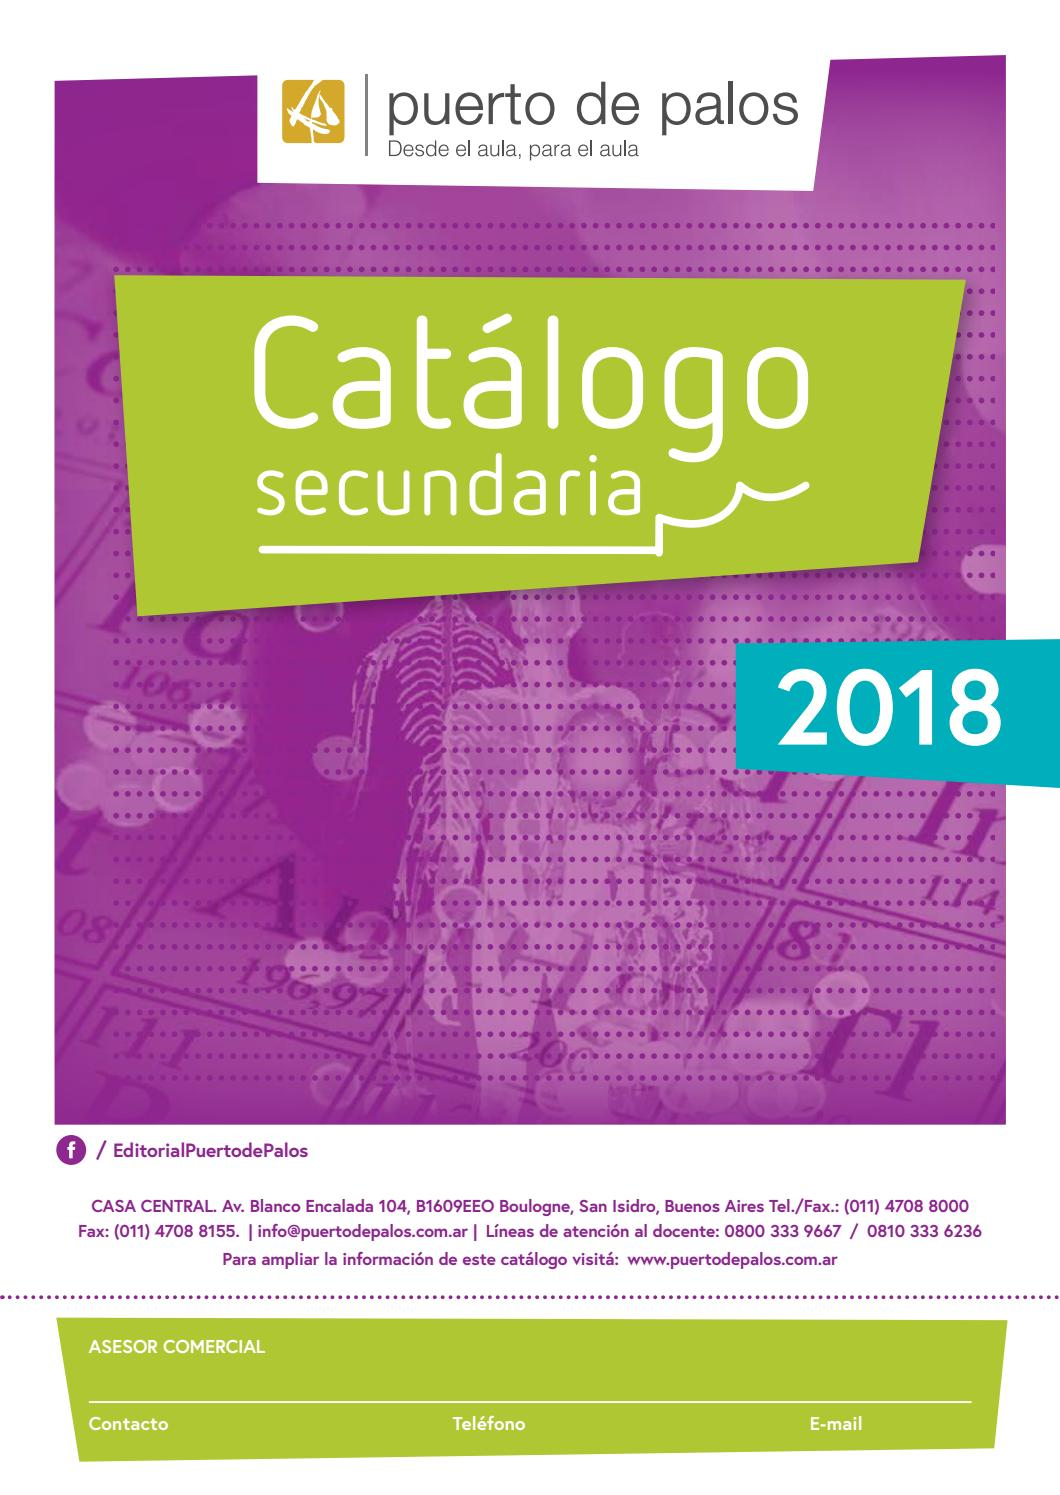 Catalogo secundaria 2018 Puerto by Macmillan Publishers S.A. - issuu